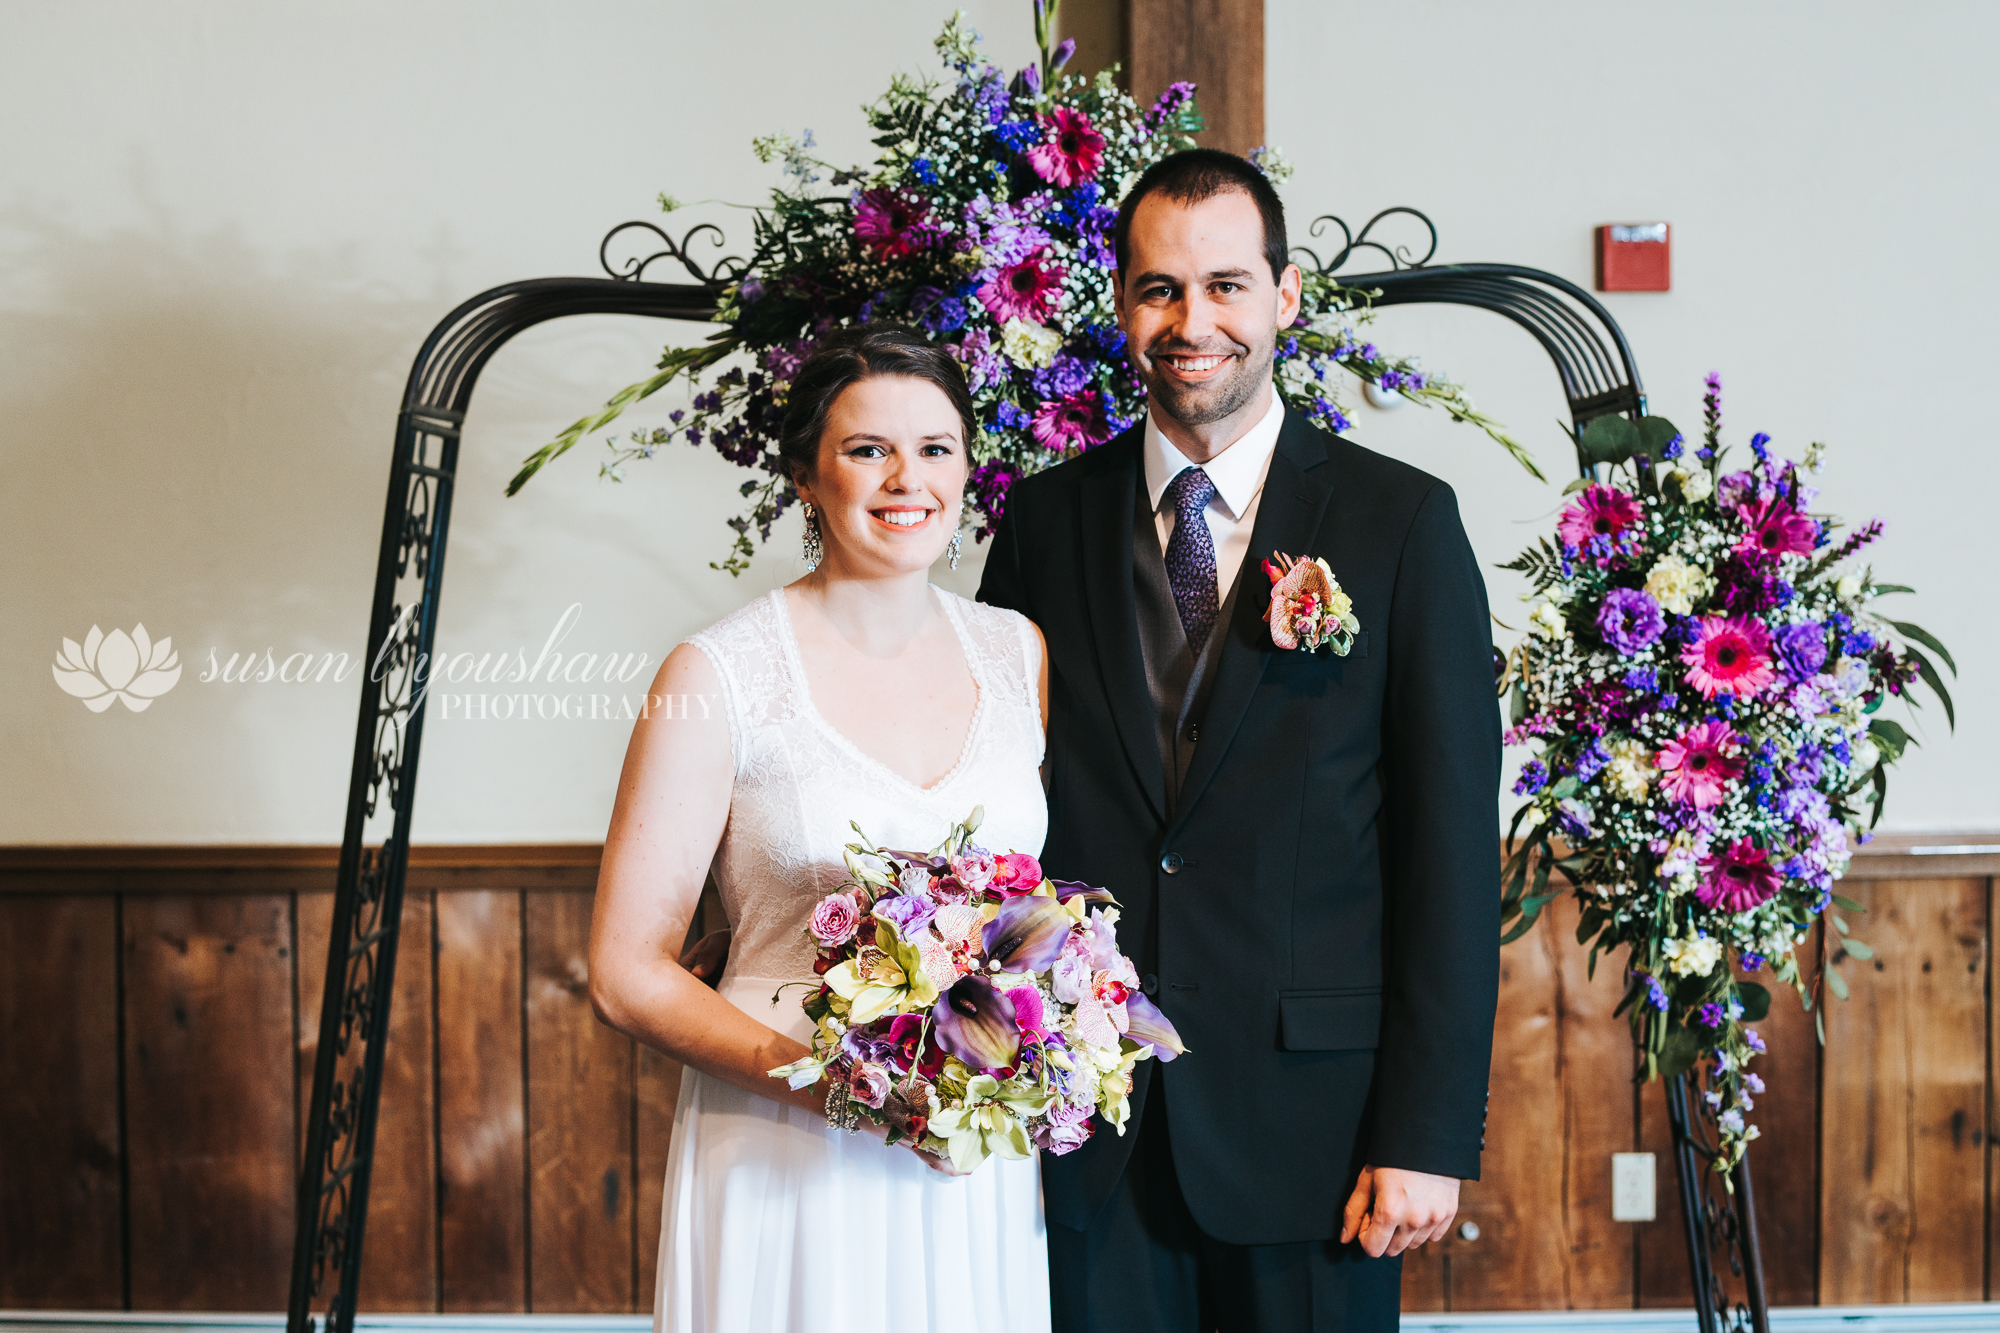 Adena and  Erik Wedding 05-17-2019 SLY Photography-45.jpg